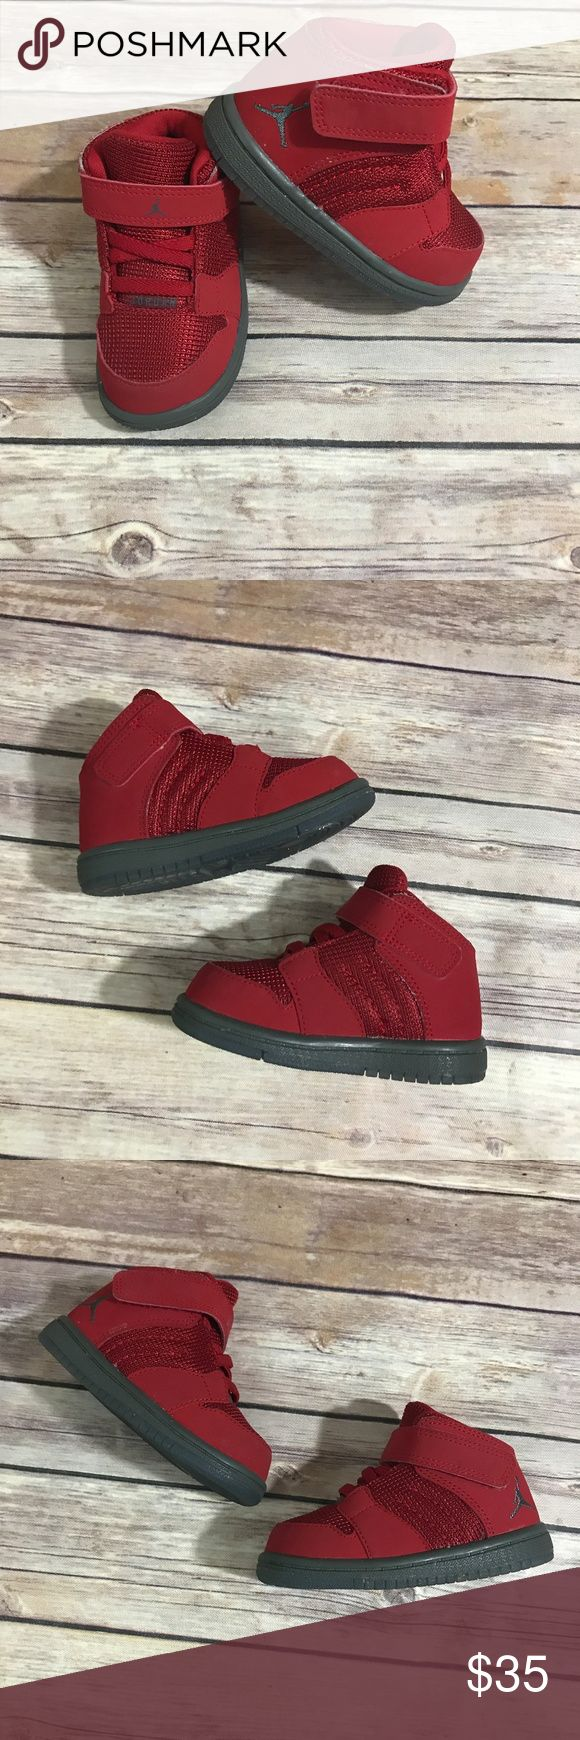 "Nike Air Jordan 1 Flight Toddler 5 Red High Tops Nike Air Jordan 1 Flight Toddler 5 Red High Tops   828244-600 size 5C  Very good used condition with very light toe wear.  Hook and loop closure with elastic ""laces"". Jordan Shoes"